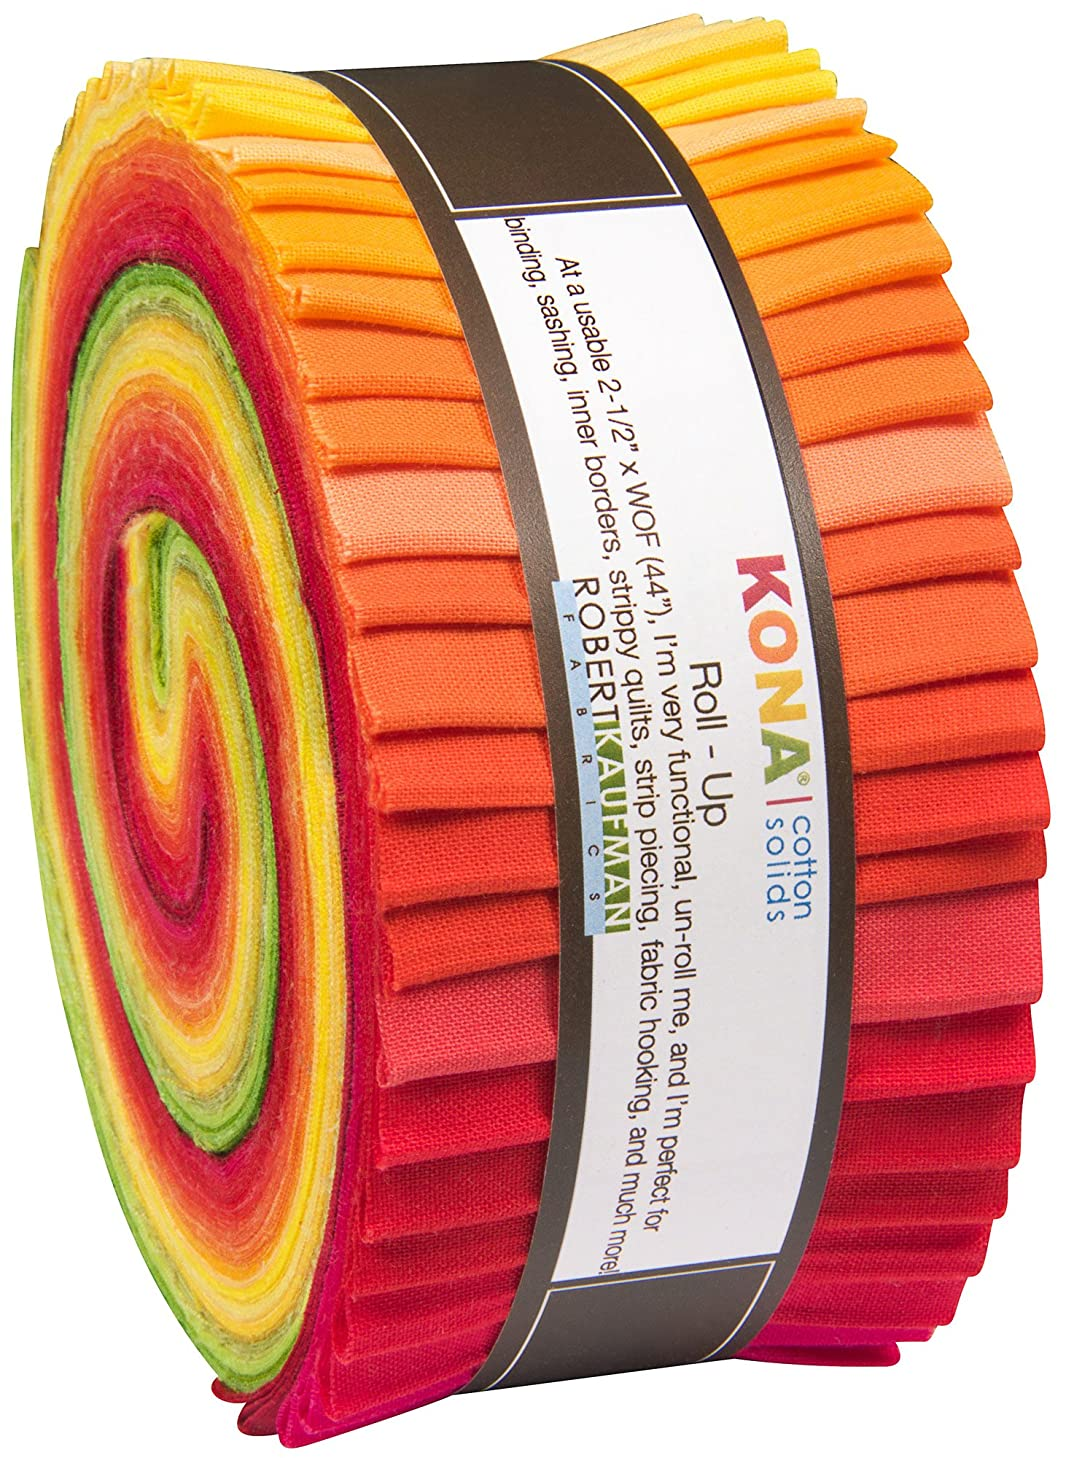 Christa Watson Kona Cotton Solids Designer Palette Series Roll Up 40 2.5-inch Strips Jelly Roll Robert Kaufman Fabrics RU-485-40